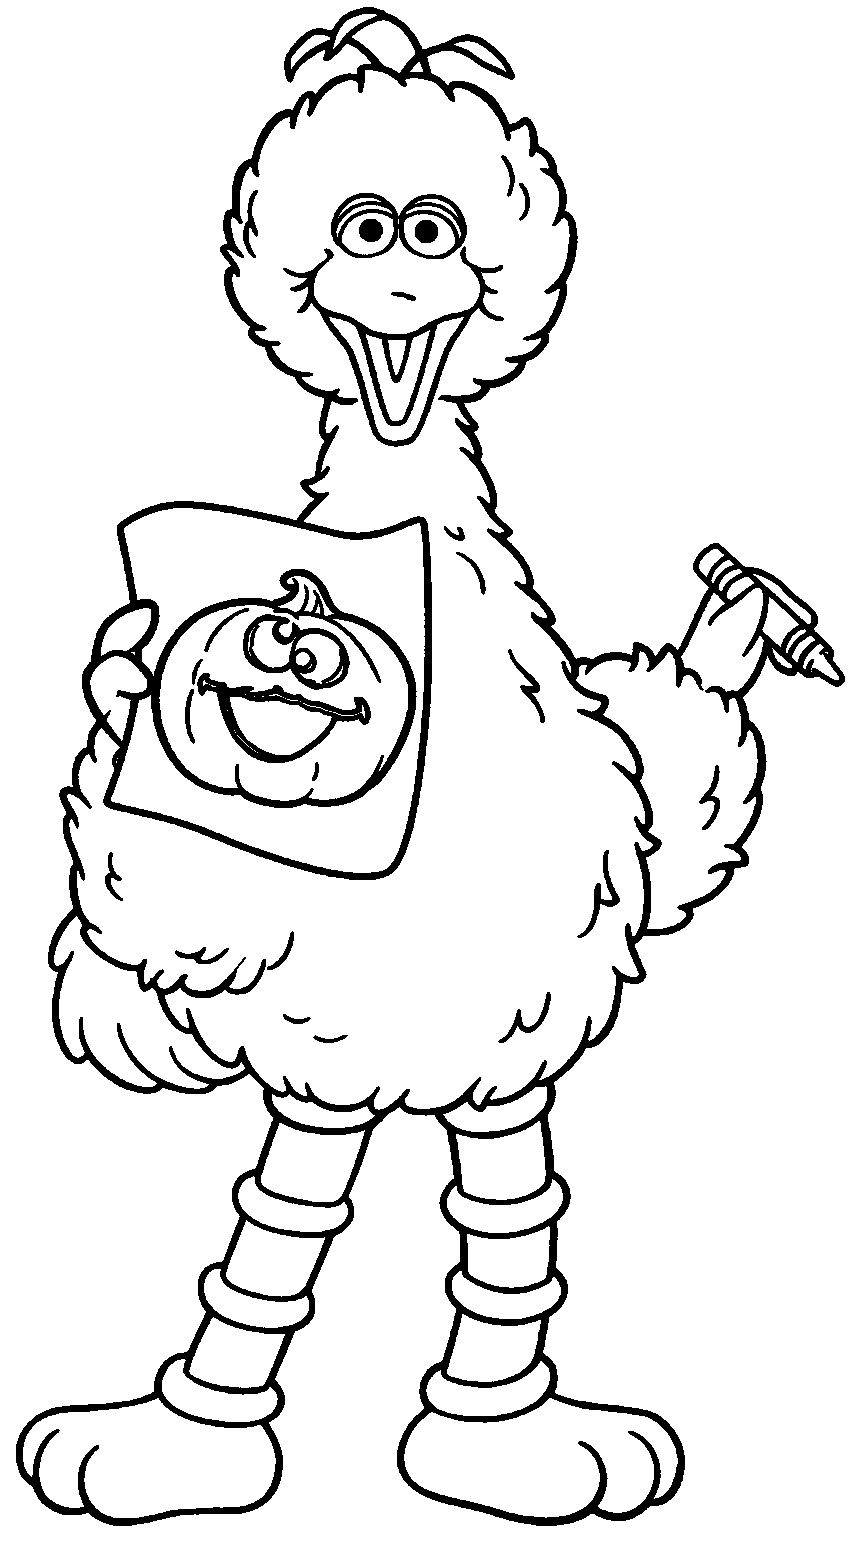 Big Bird Draw Sesame Street Coloring Pages Coloring Pages Bird